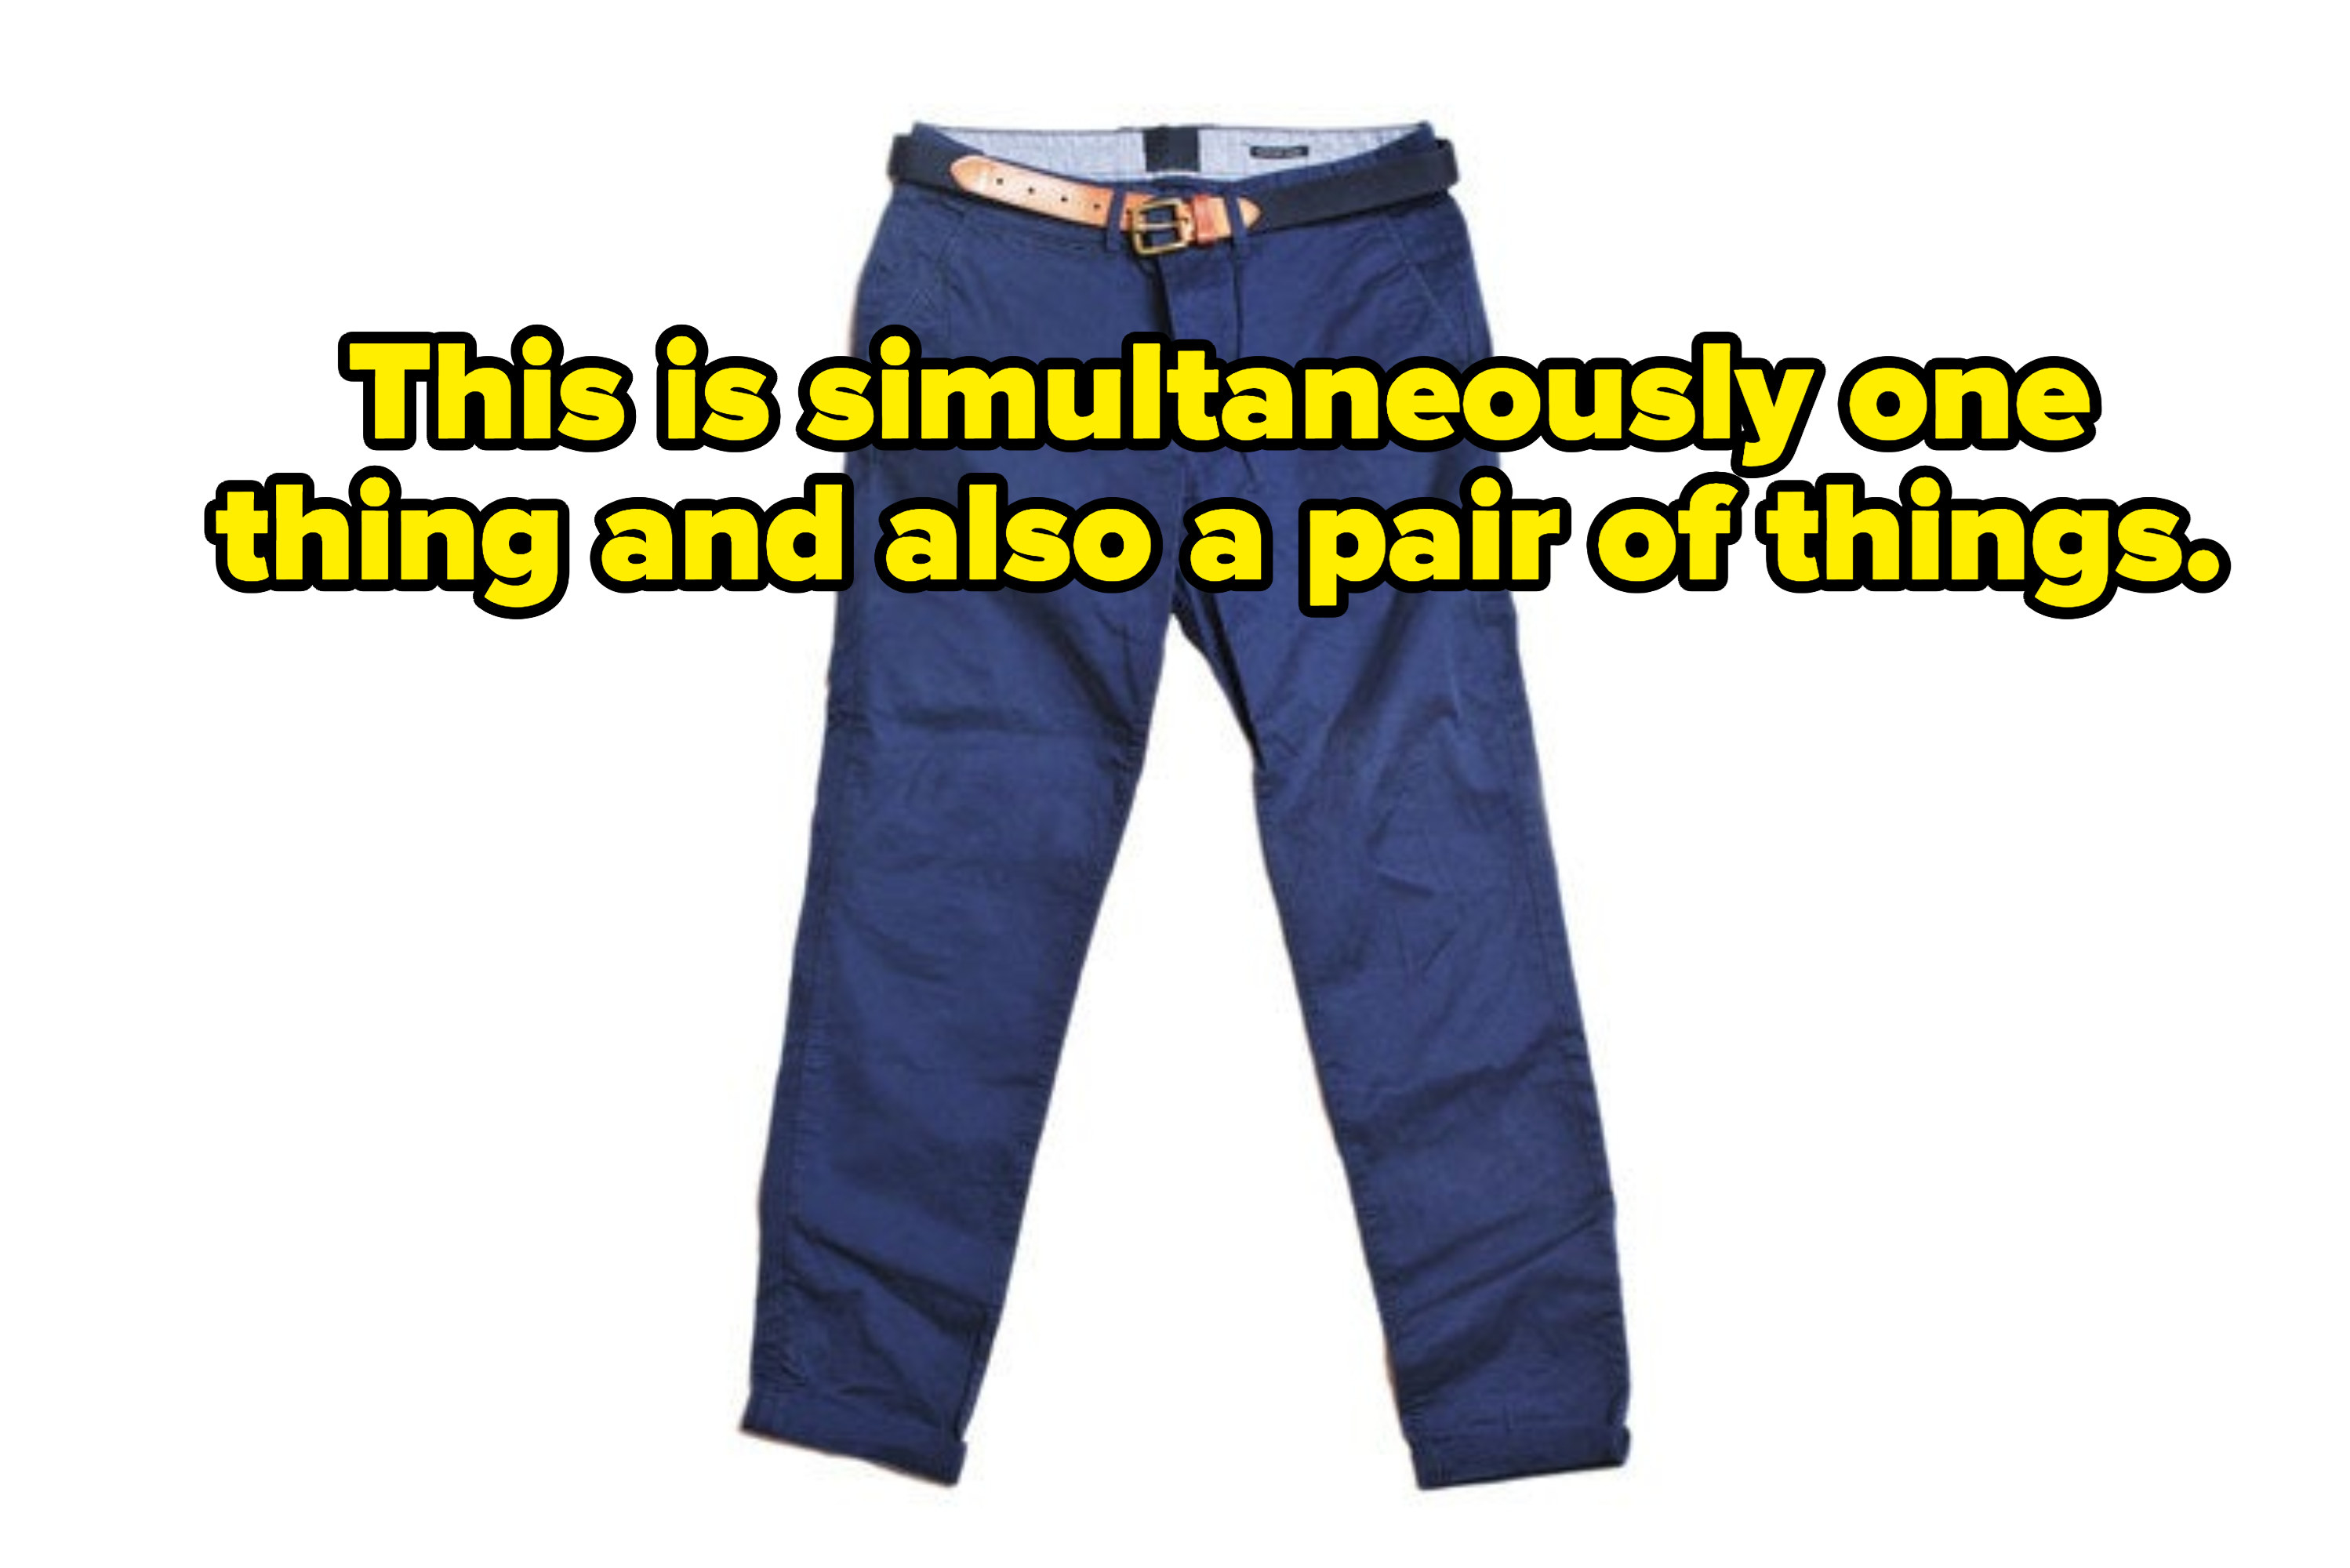 Image of pants that says this is simultaneously one thing and also a pair of things